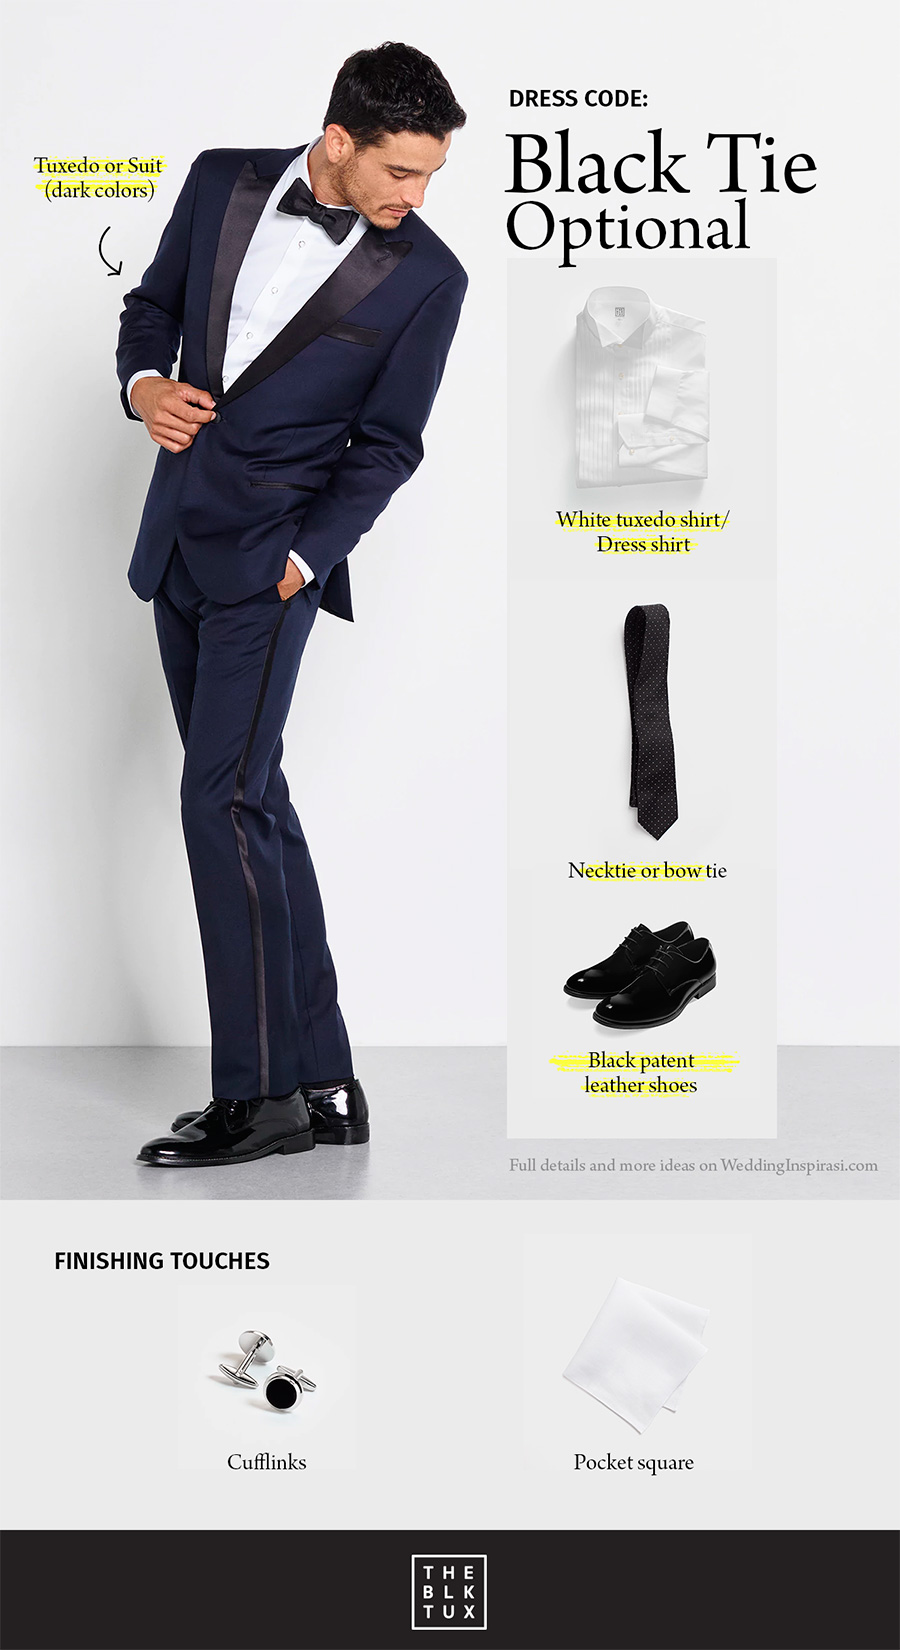 Decoding Dress Codes Get Smart With The Black Tux